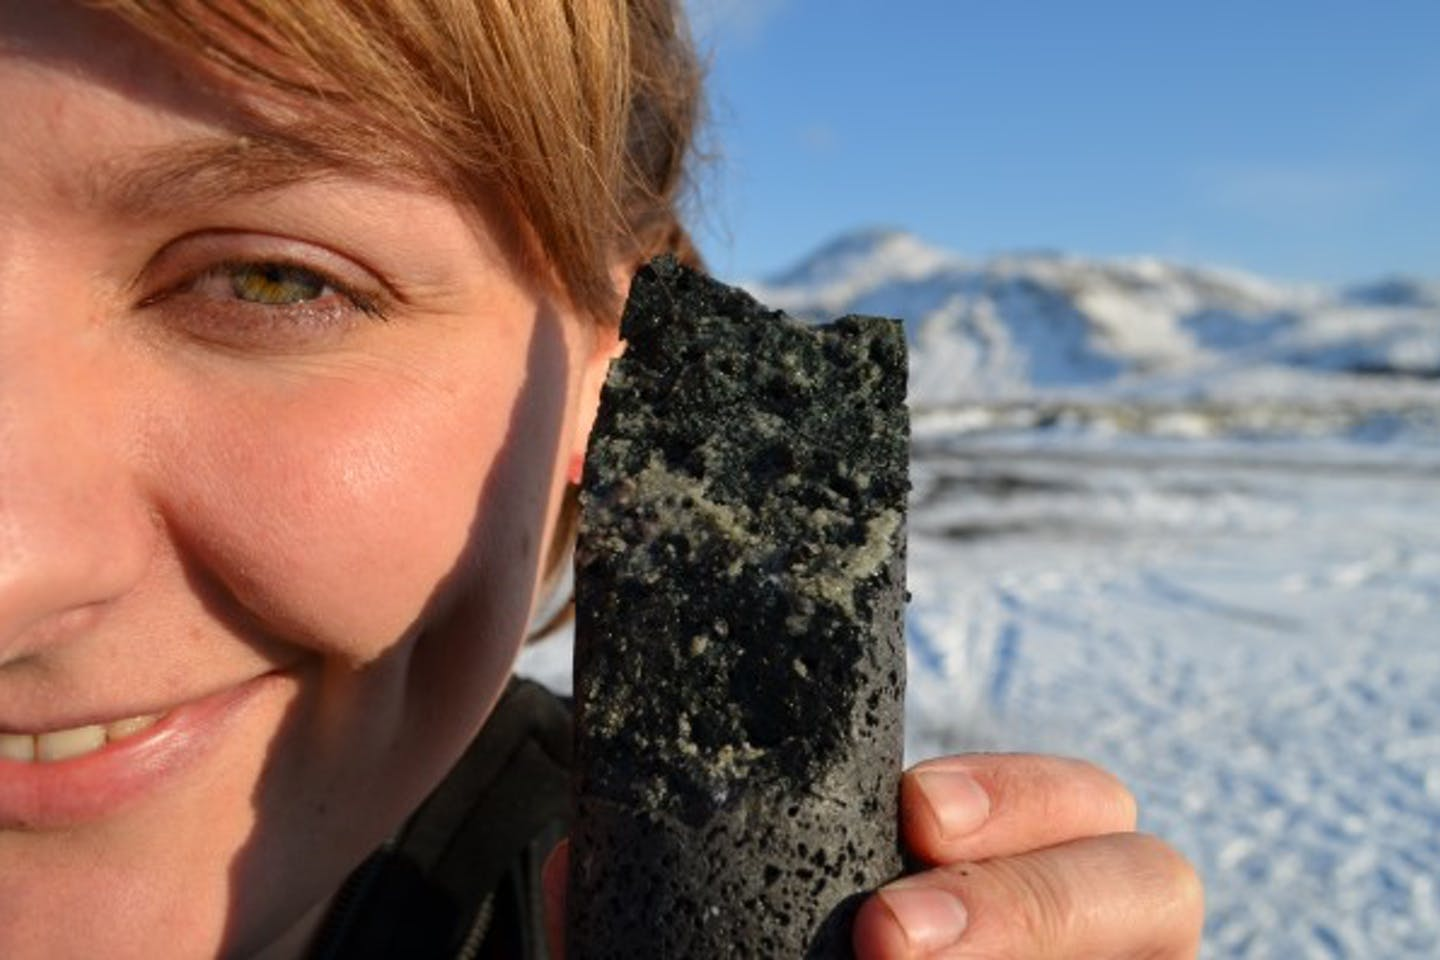 carbon emissions turn into stone